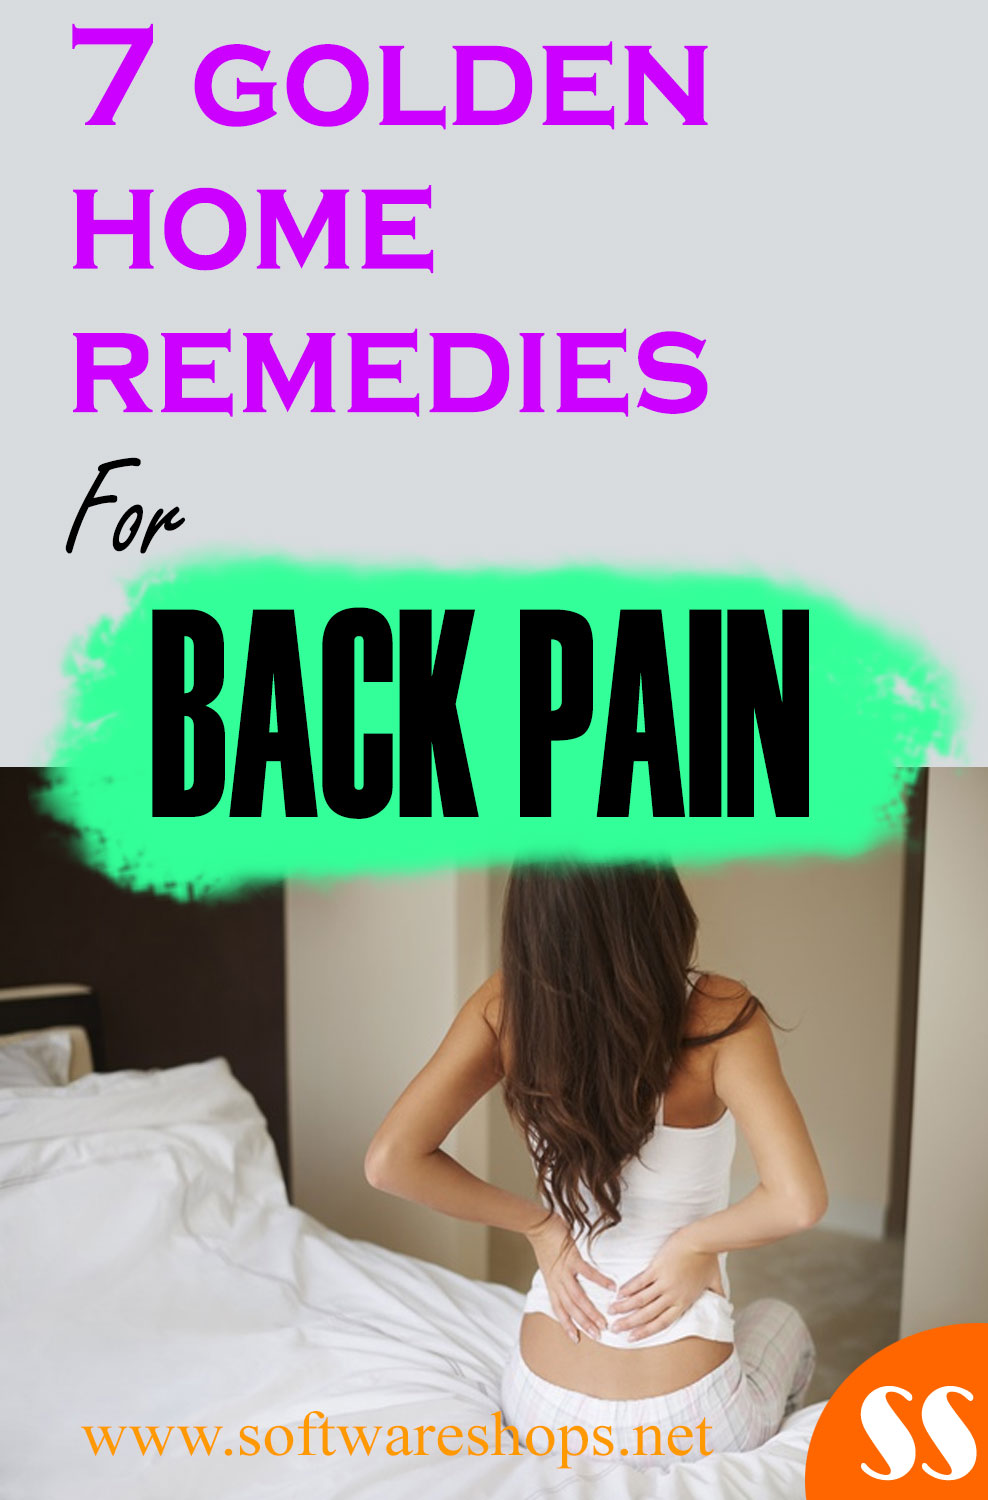 golden home remedies for backpain